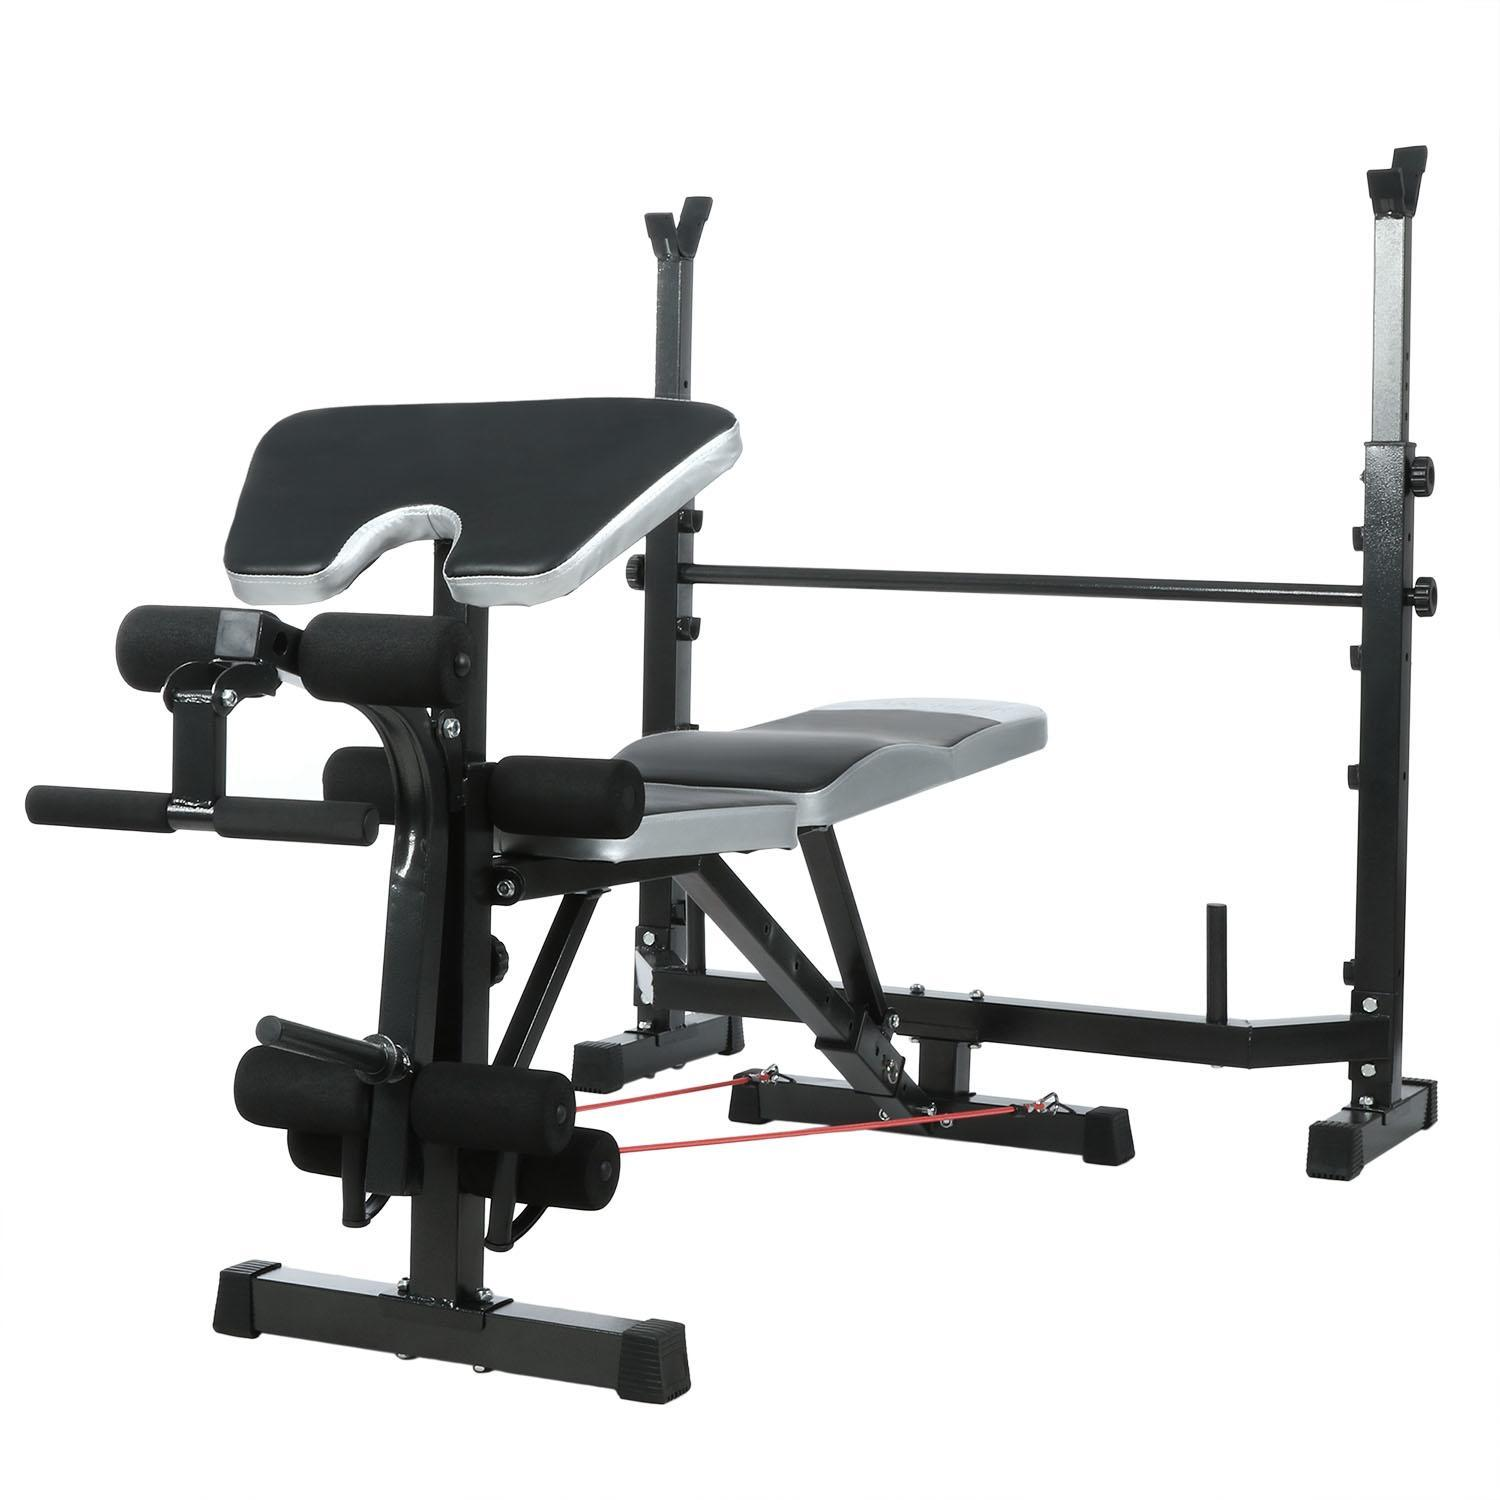 Multi-function Olympic Workout Bench and Rack Home Gym Fitness Weight Bench